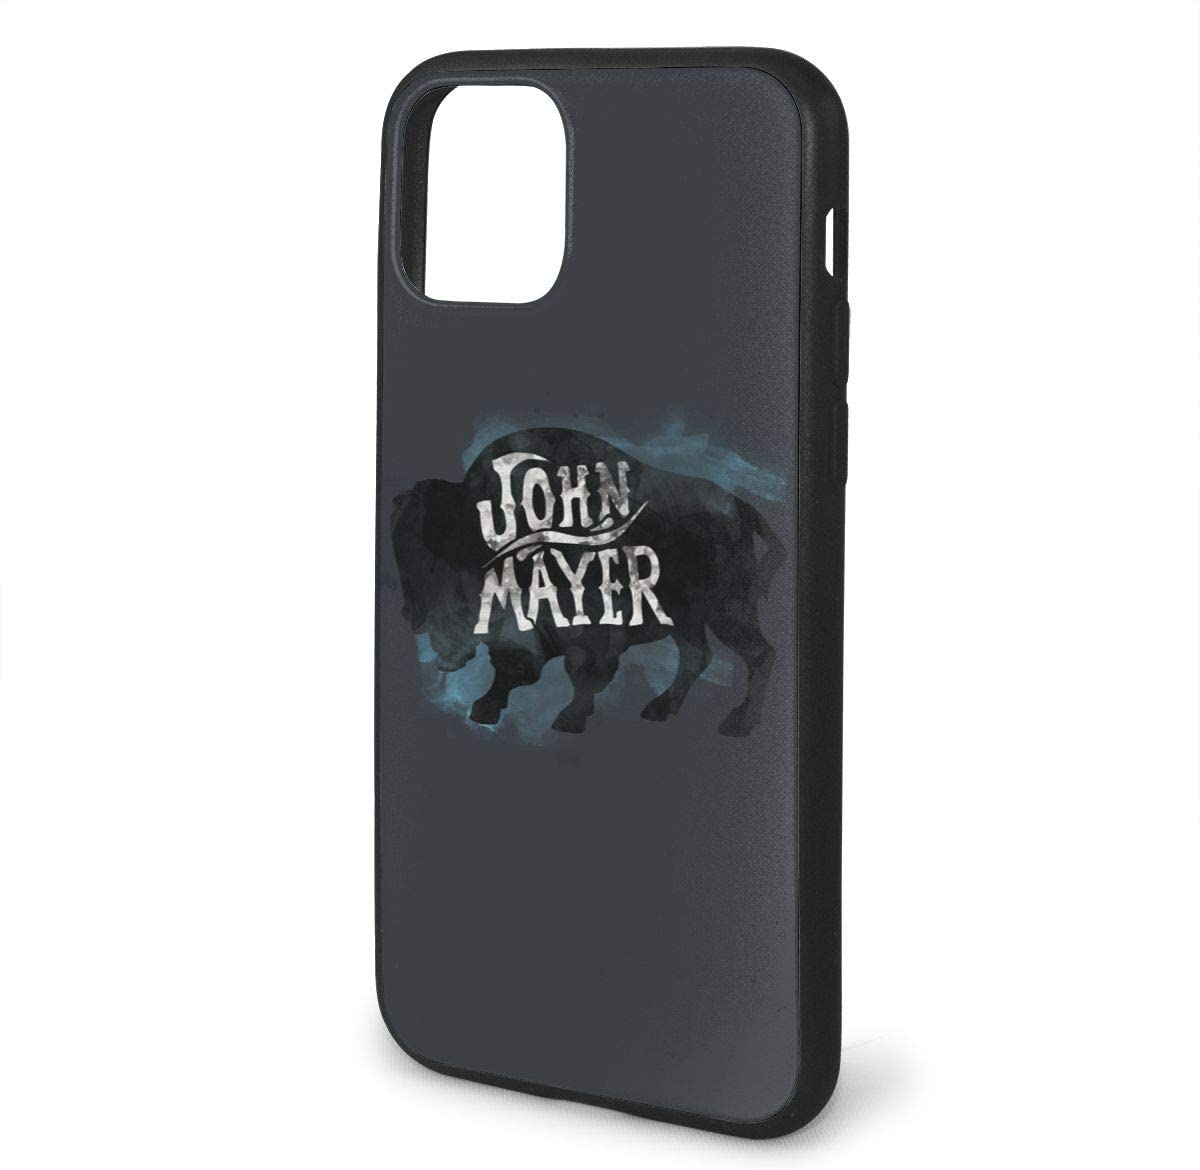 Michaelcostume John Mayer iPhone 11 Case/Ultra Slim/Lightweight/Scratch Resistant/Compatible with iPhone 11 iPhone 11 Pro